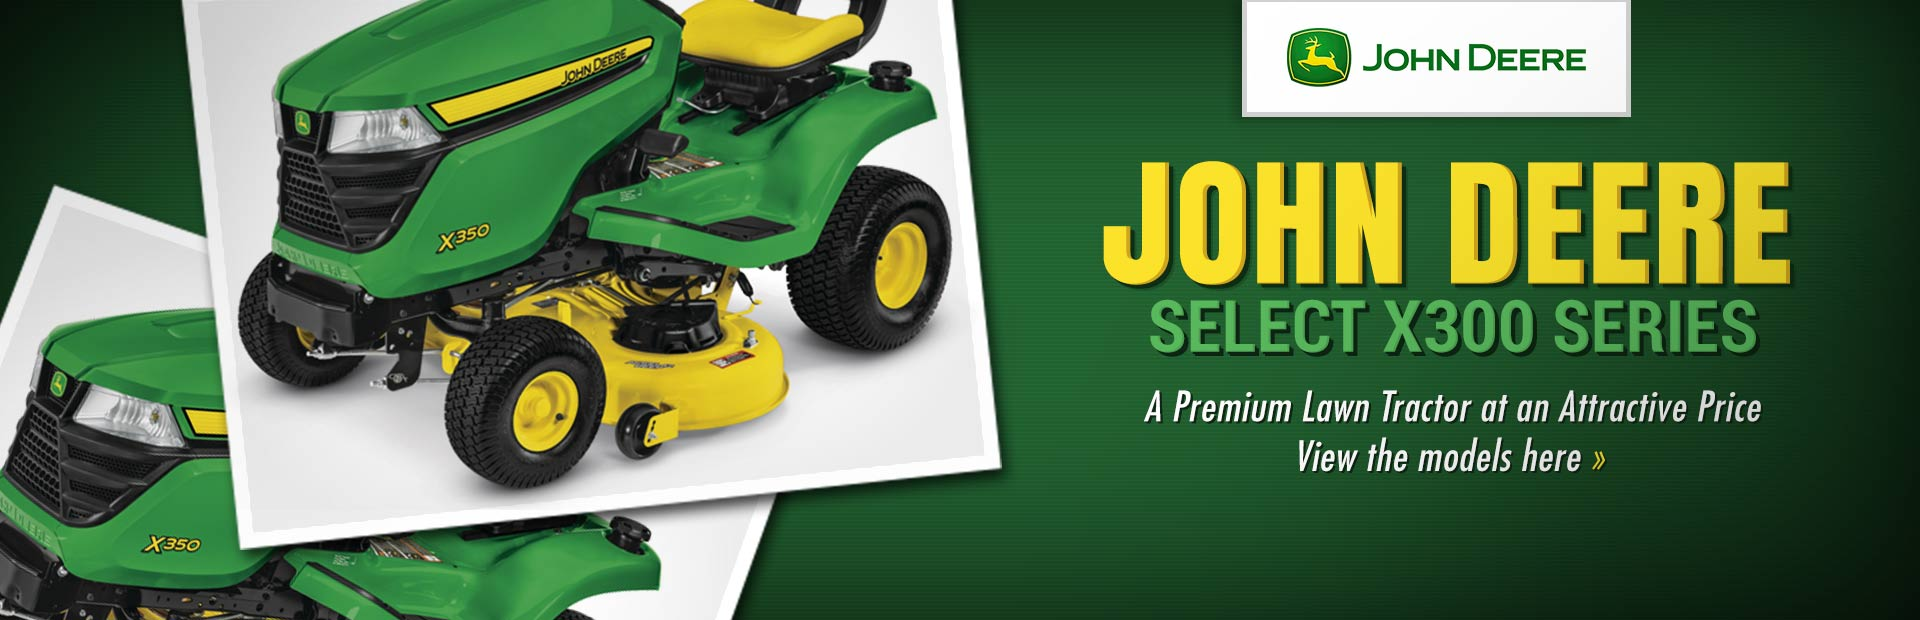 john deere select series - photo #28